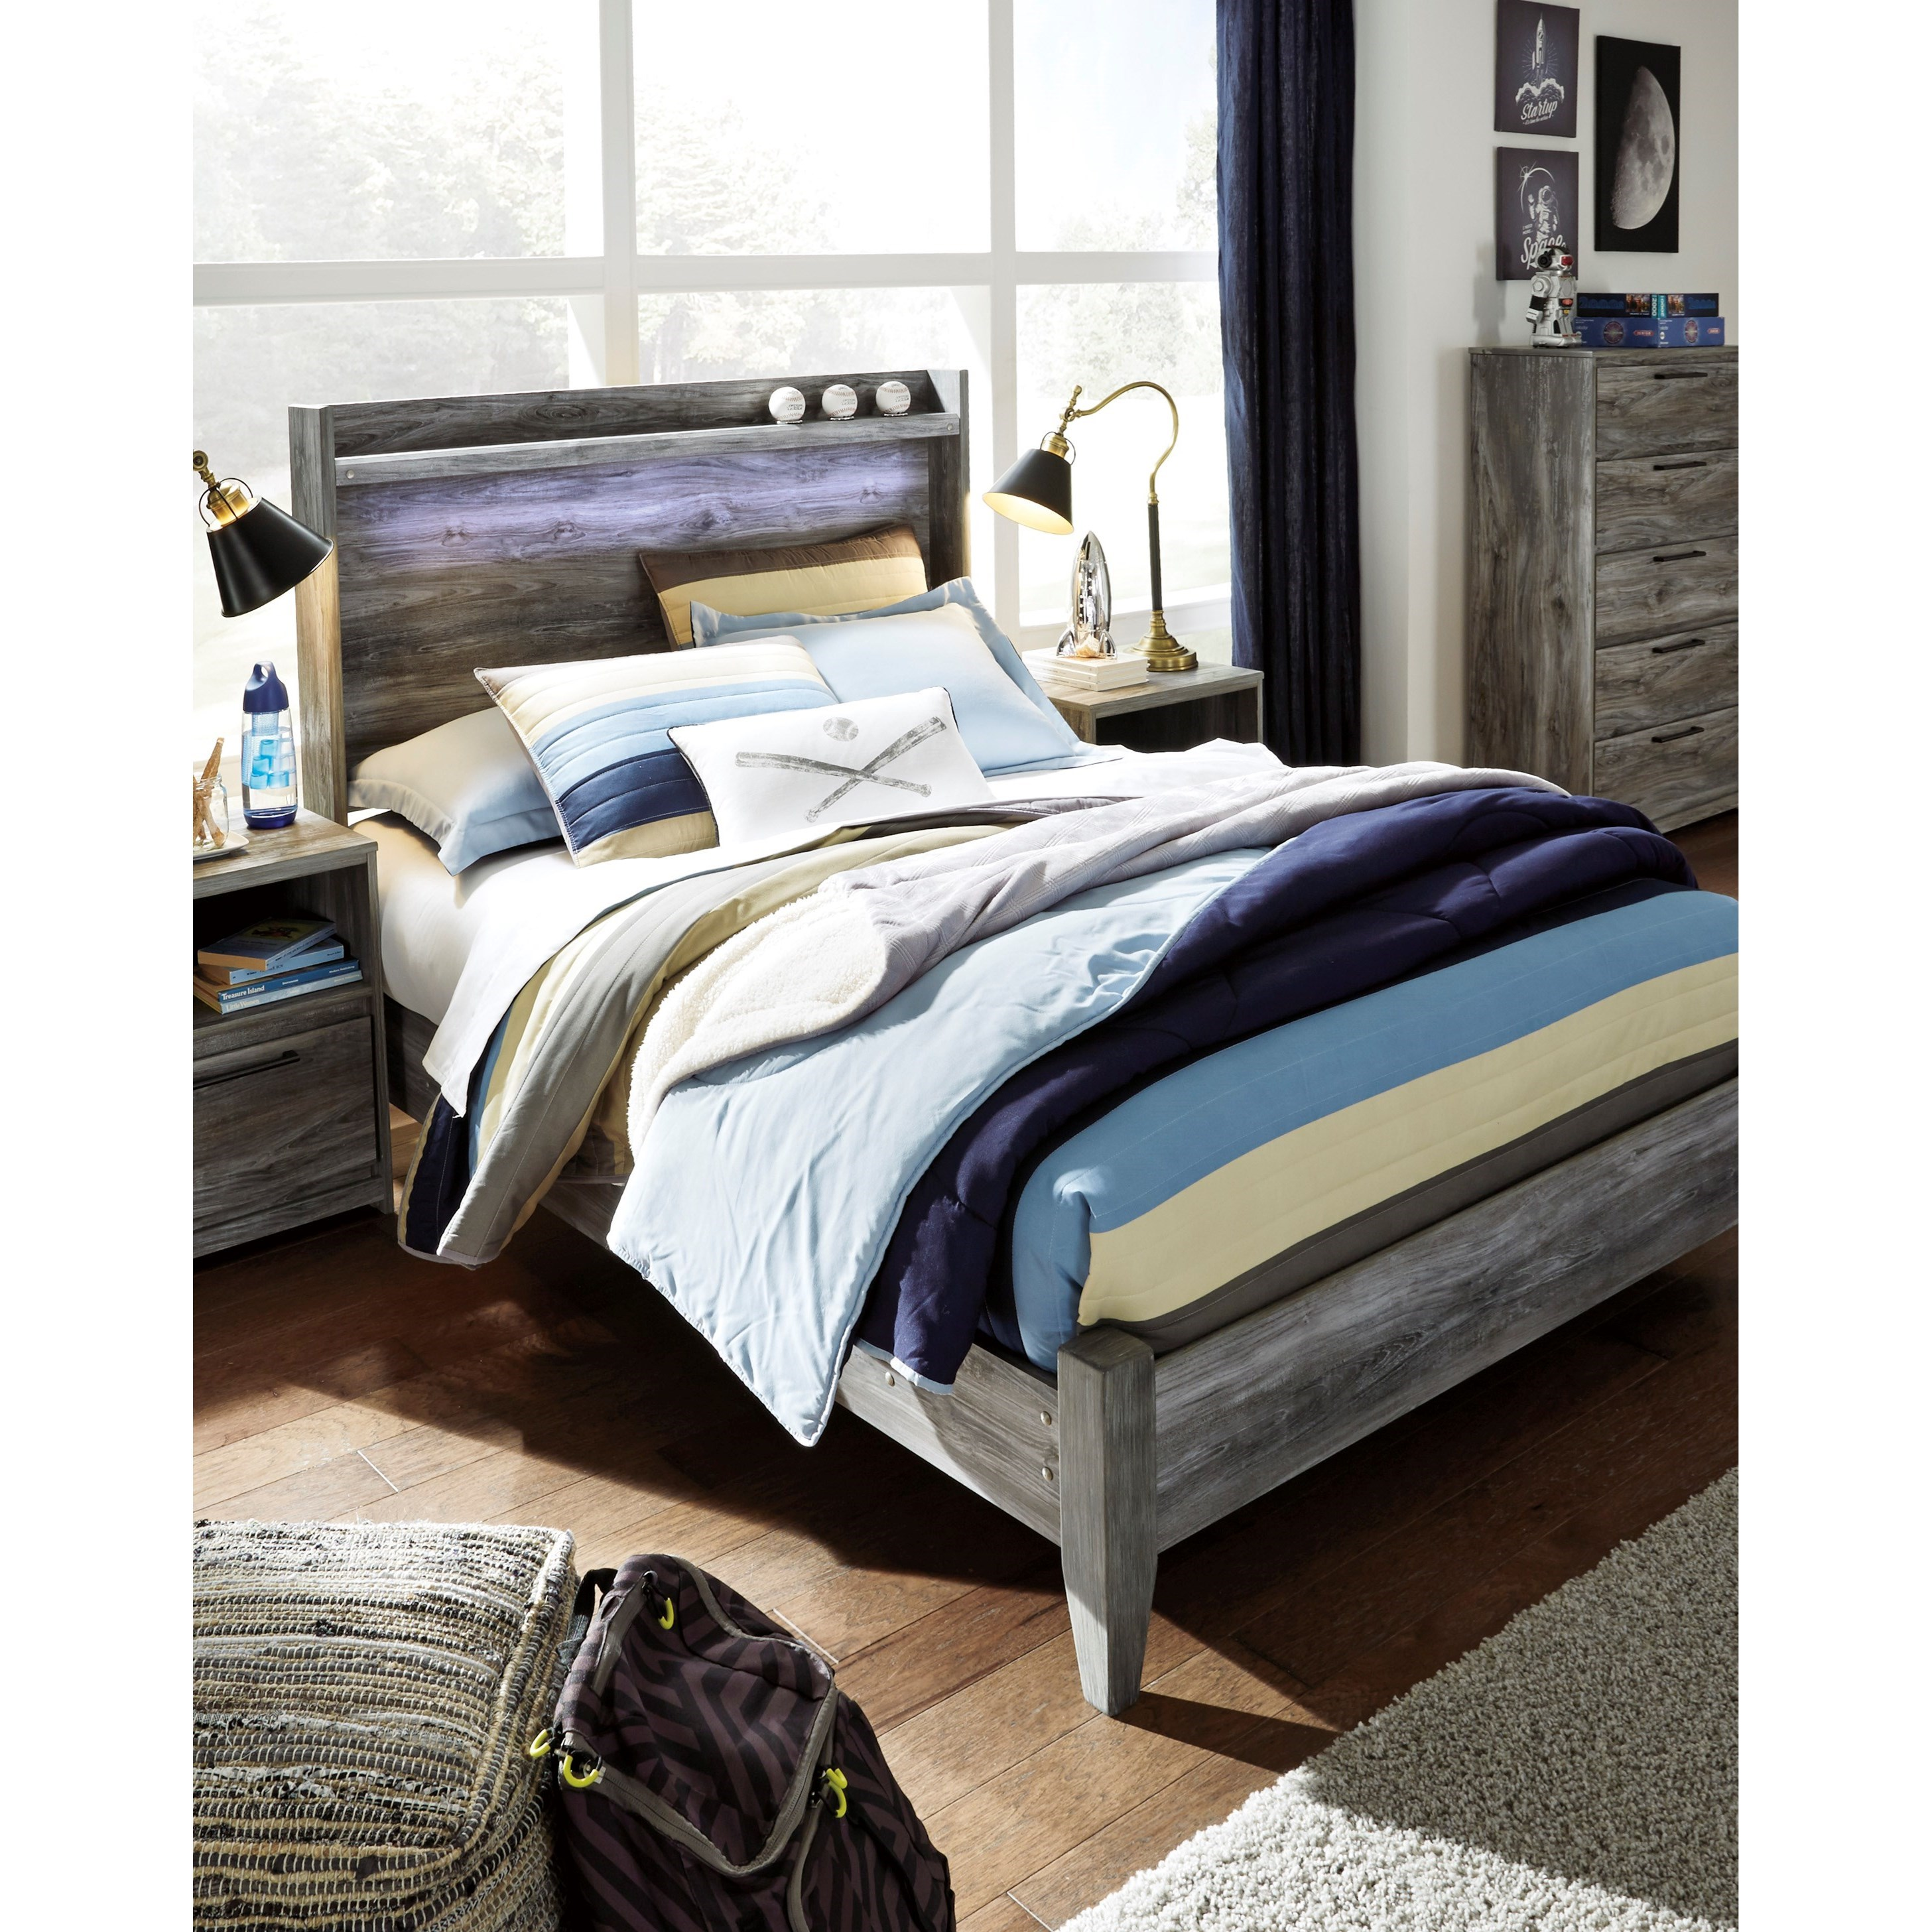 Baystorm Full Size Storage Bed B221: Signature Design By Ashley Baystorm Full Panel Bed With